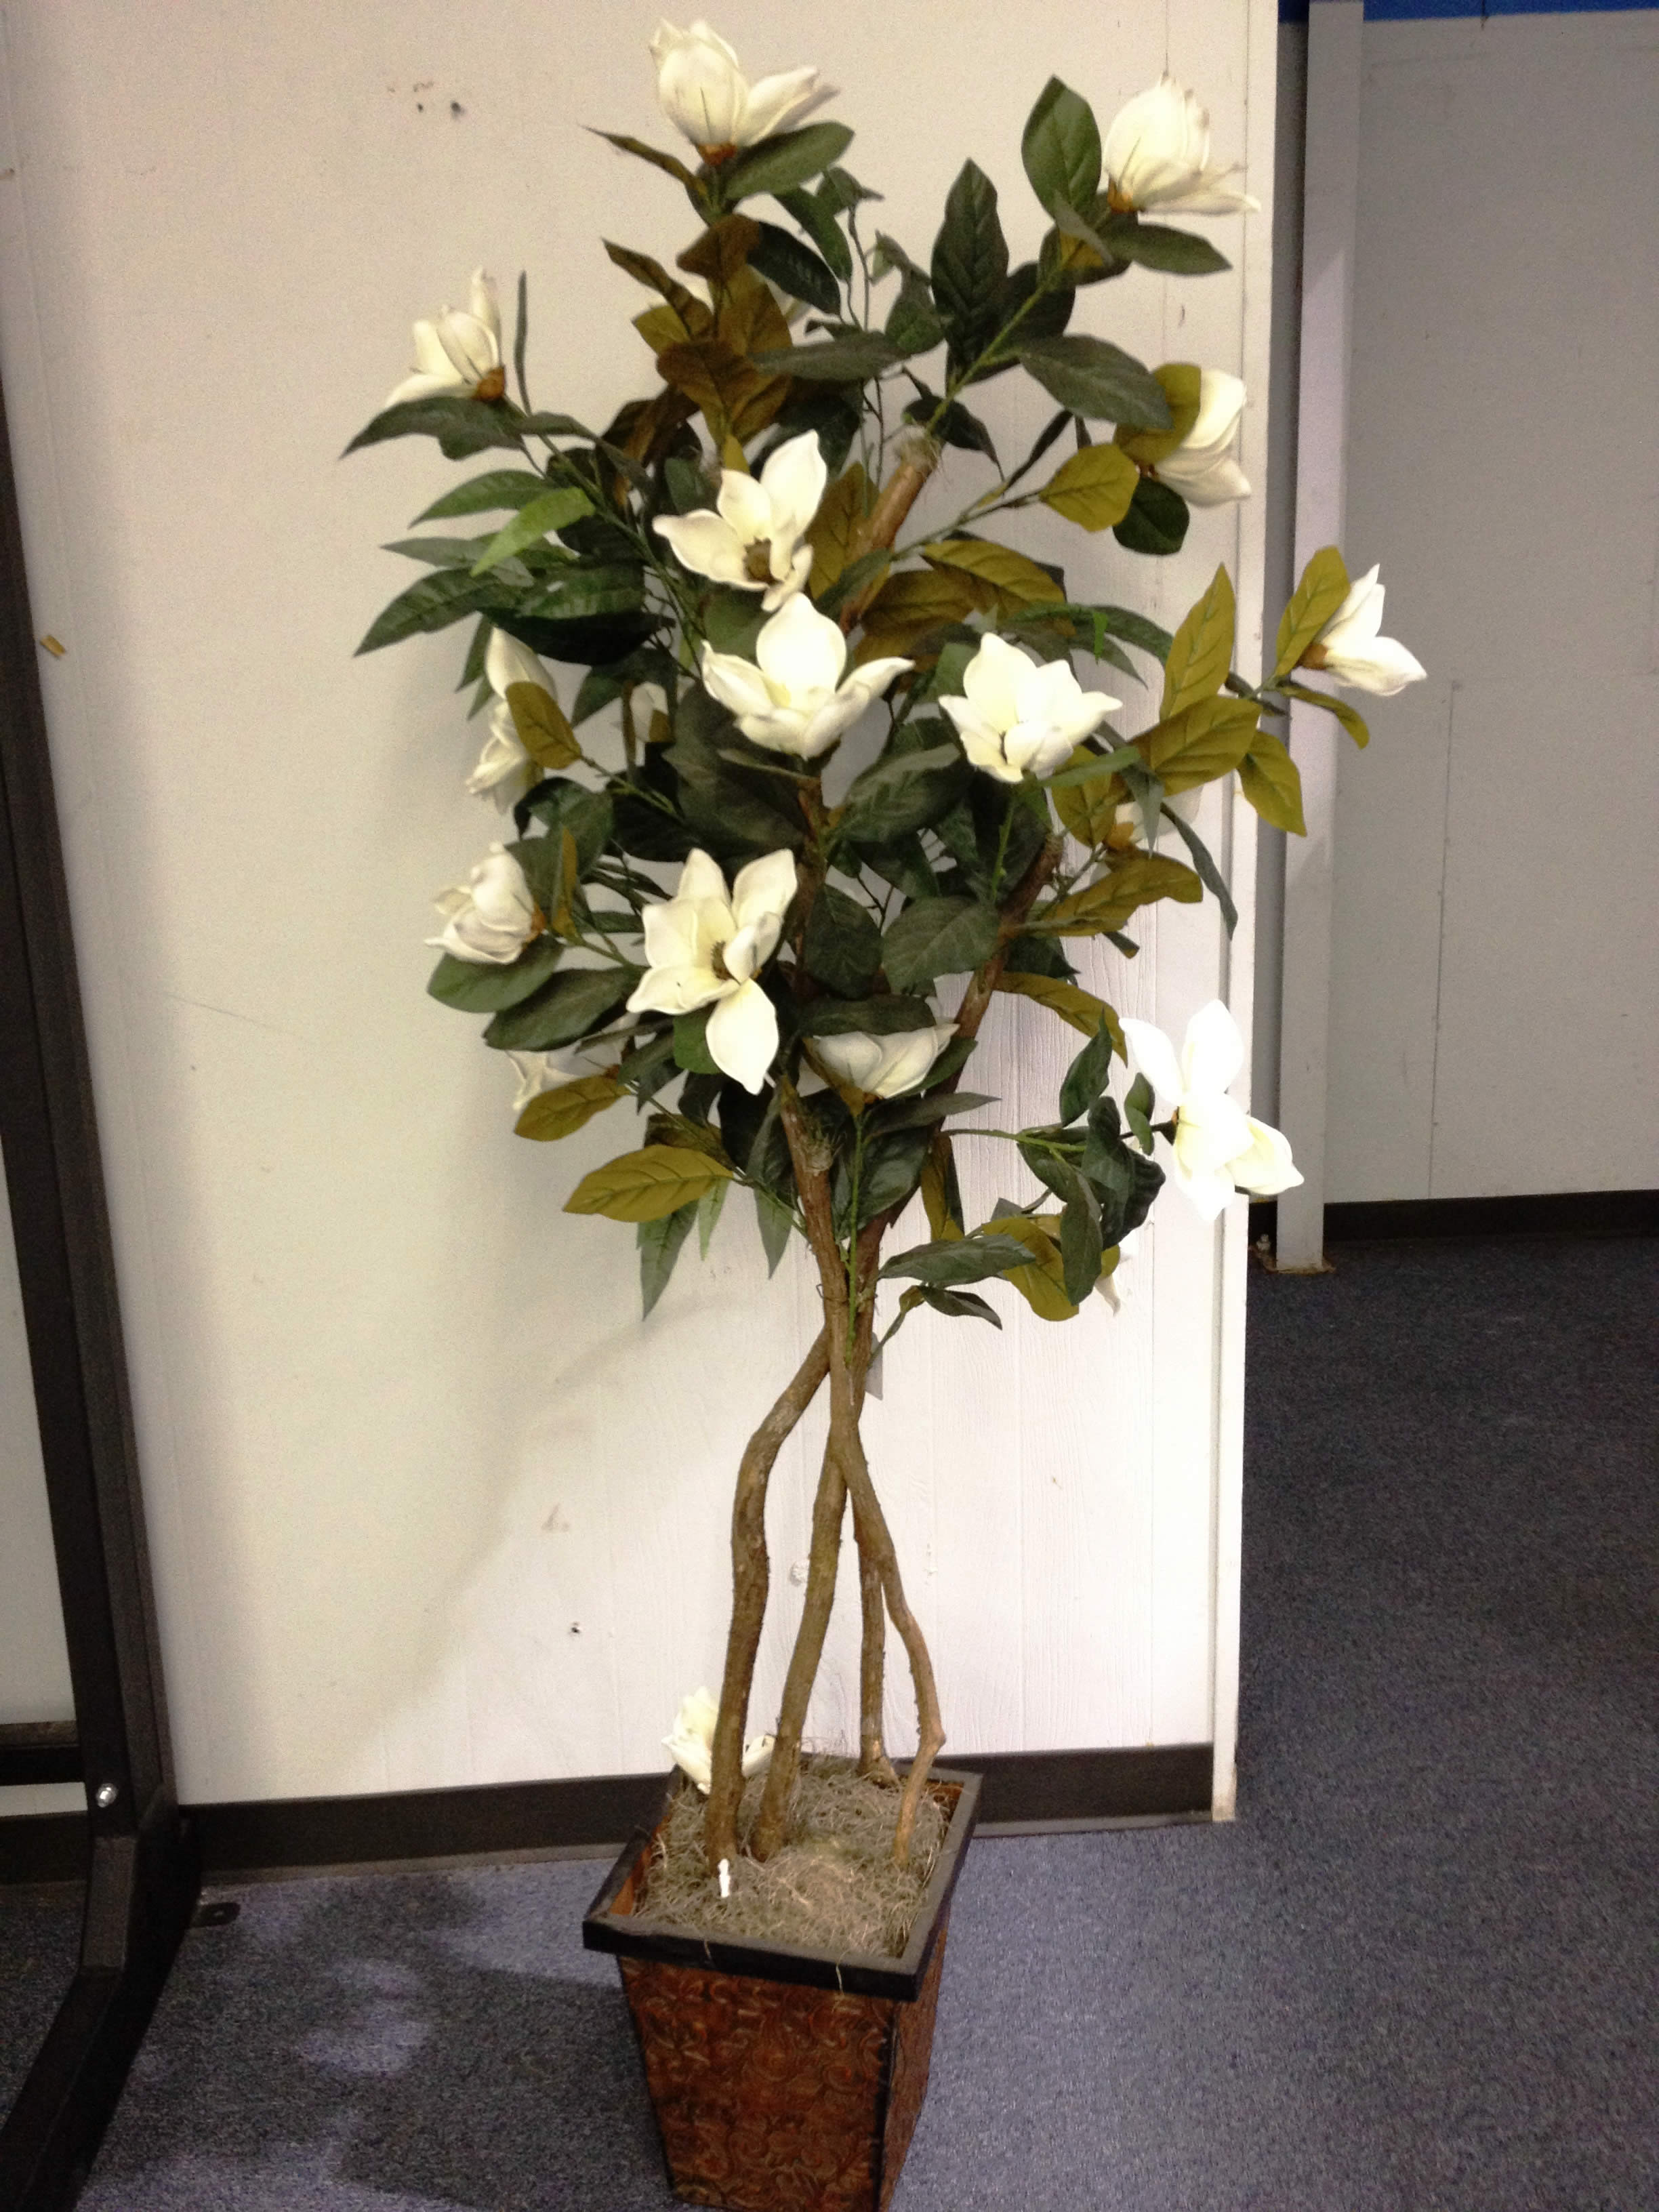 Magnolia tree 6 39 ivory indoor plants - Indoor trees plants ...